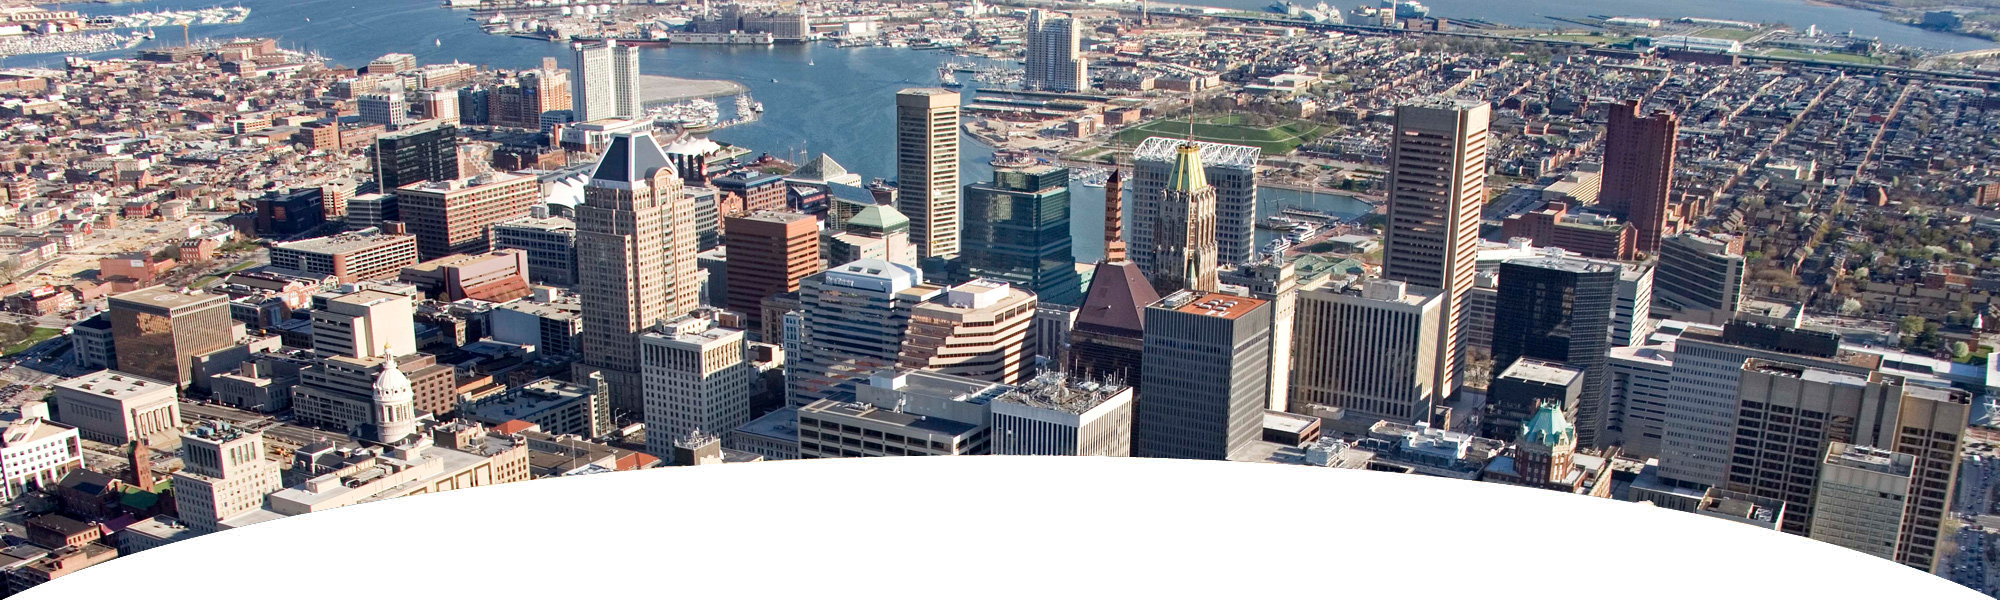 Bank on Maryland - aerial view of downtown Baltimore City